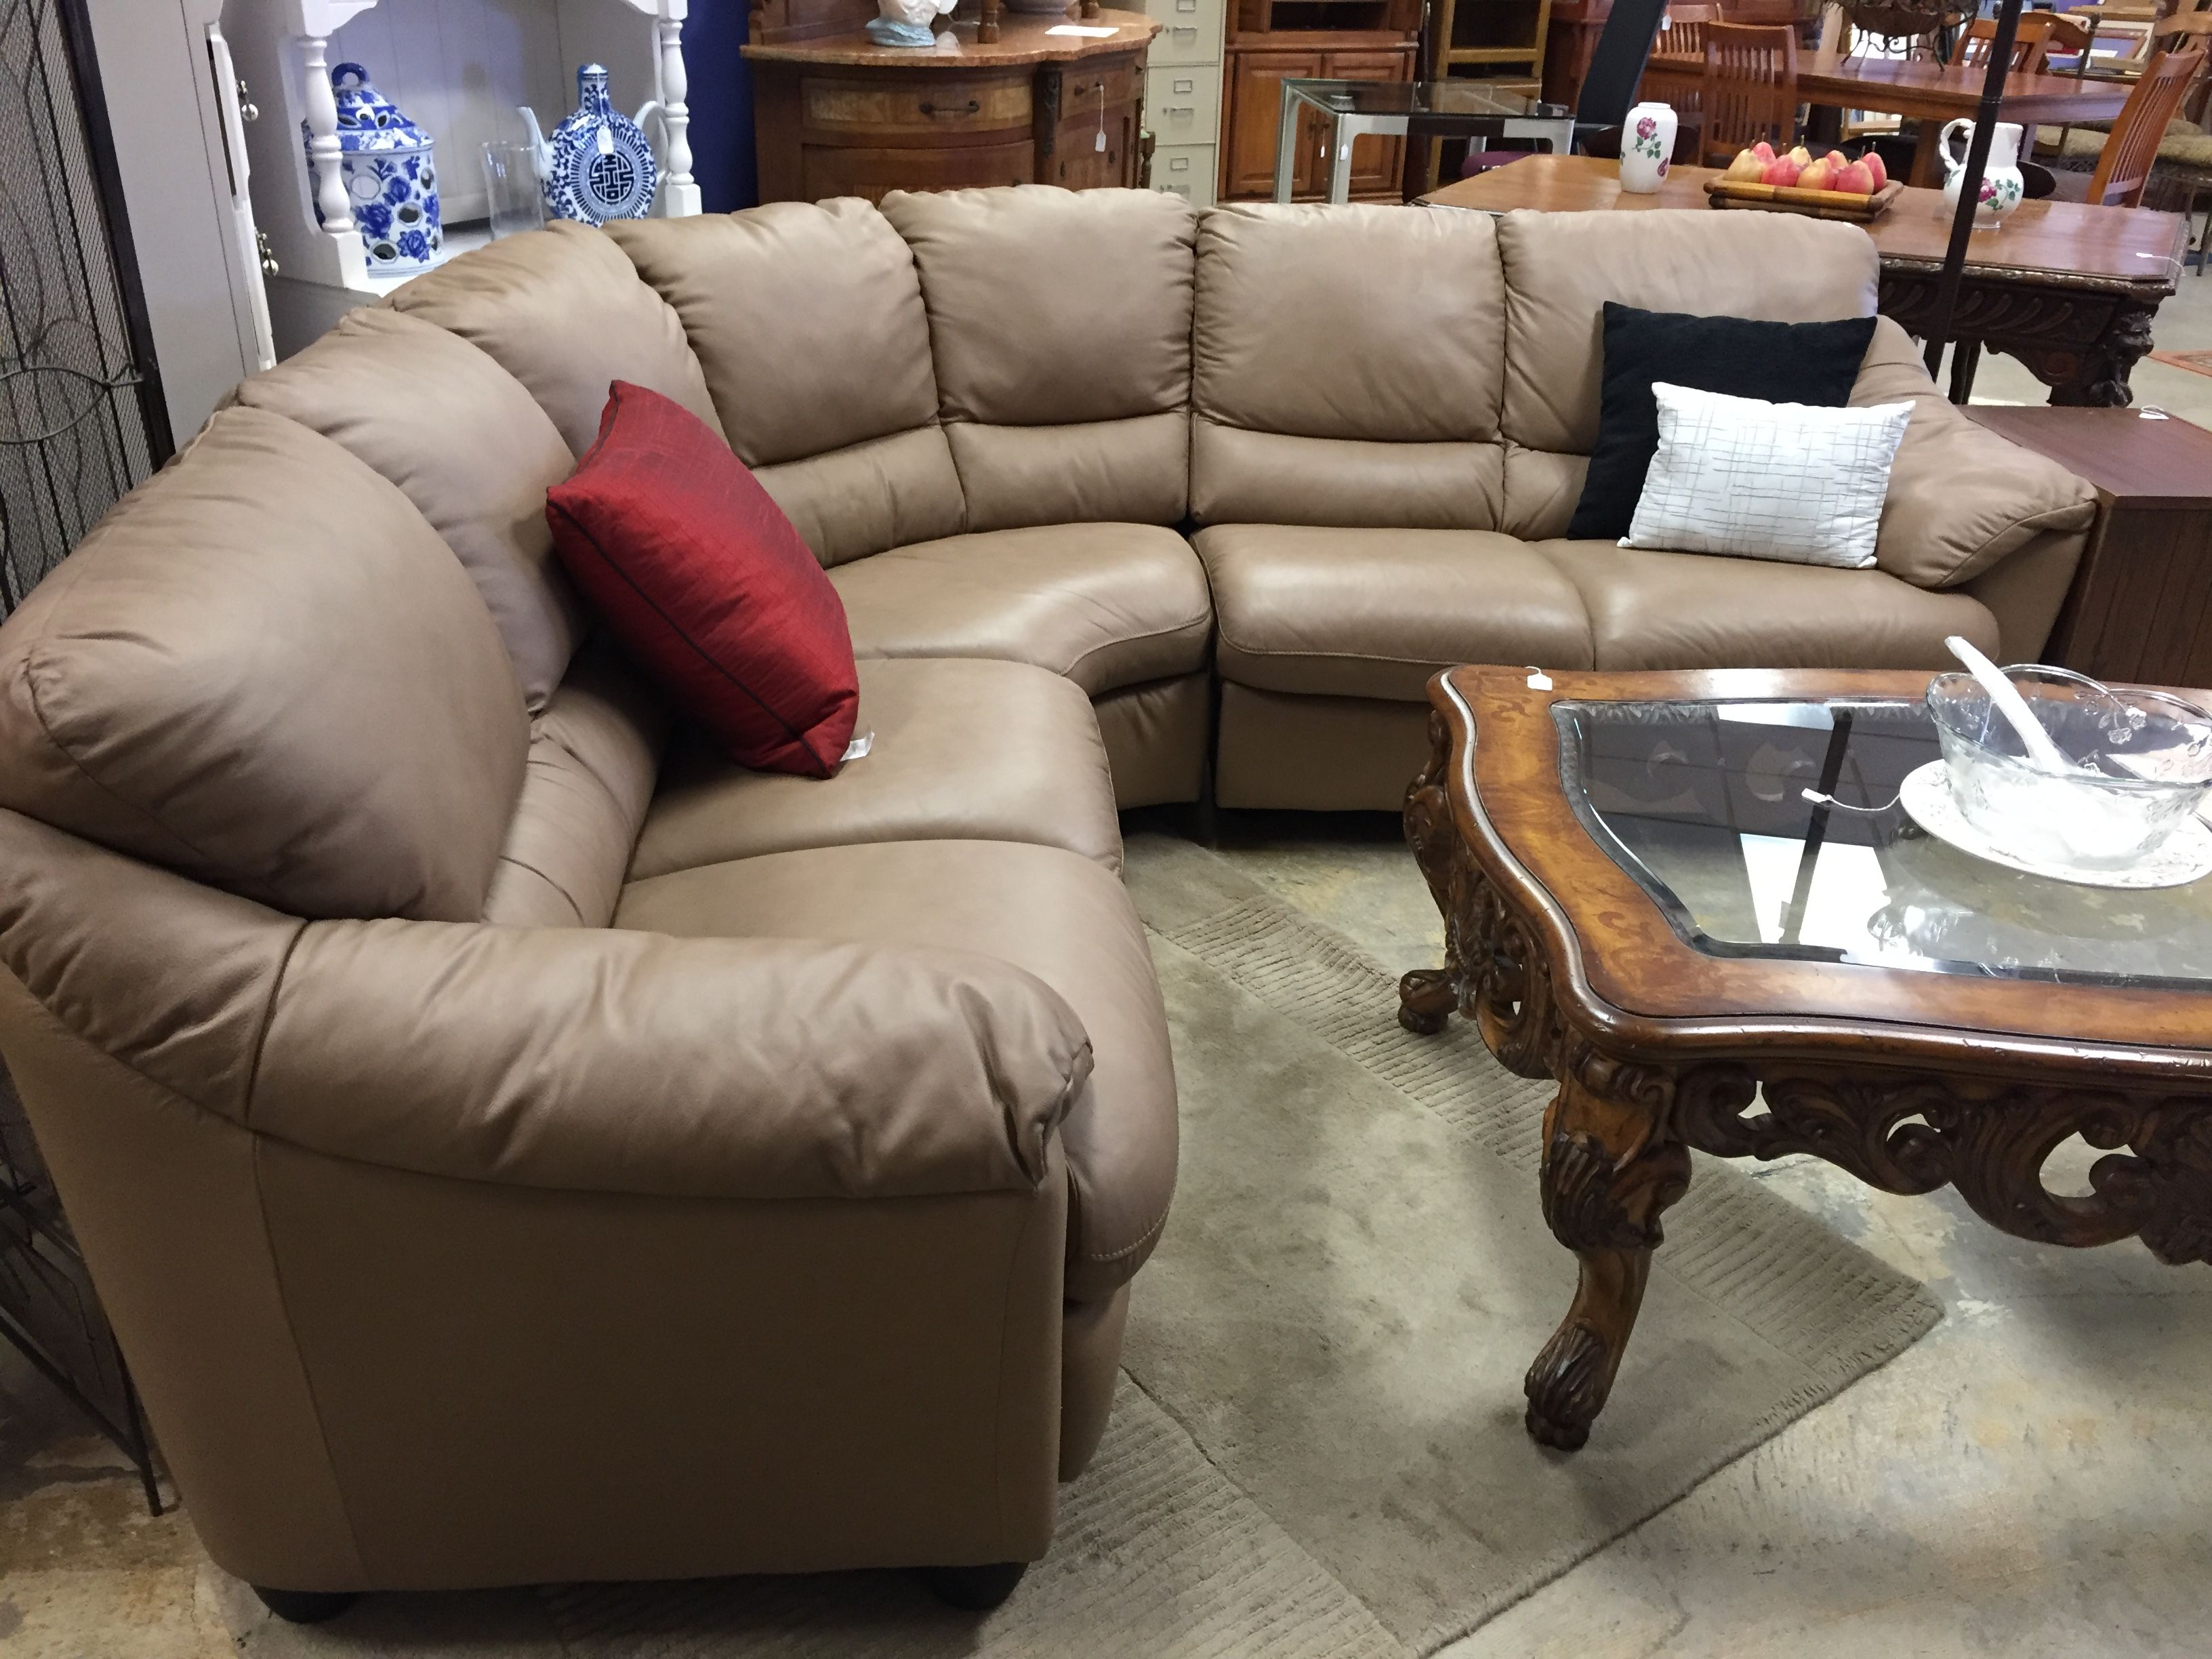 Natuzzi Italian Light Brown Leather Sectional 1900 Sectional Mk Consignment Leather Forsale Shop Buy Ho Furniture Quality Furniture Leather Sectional